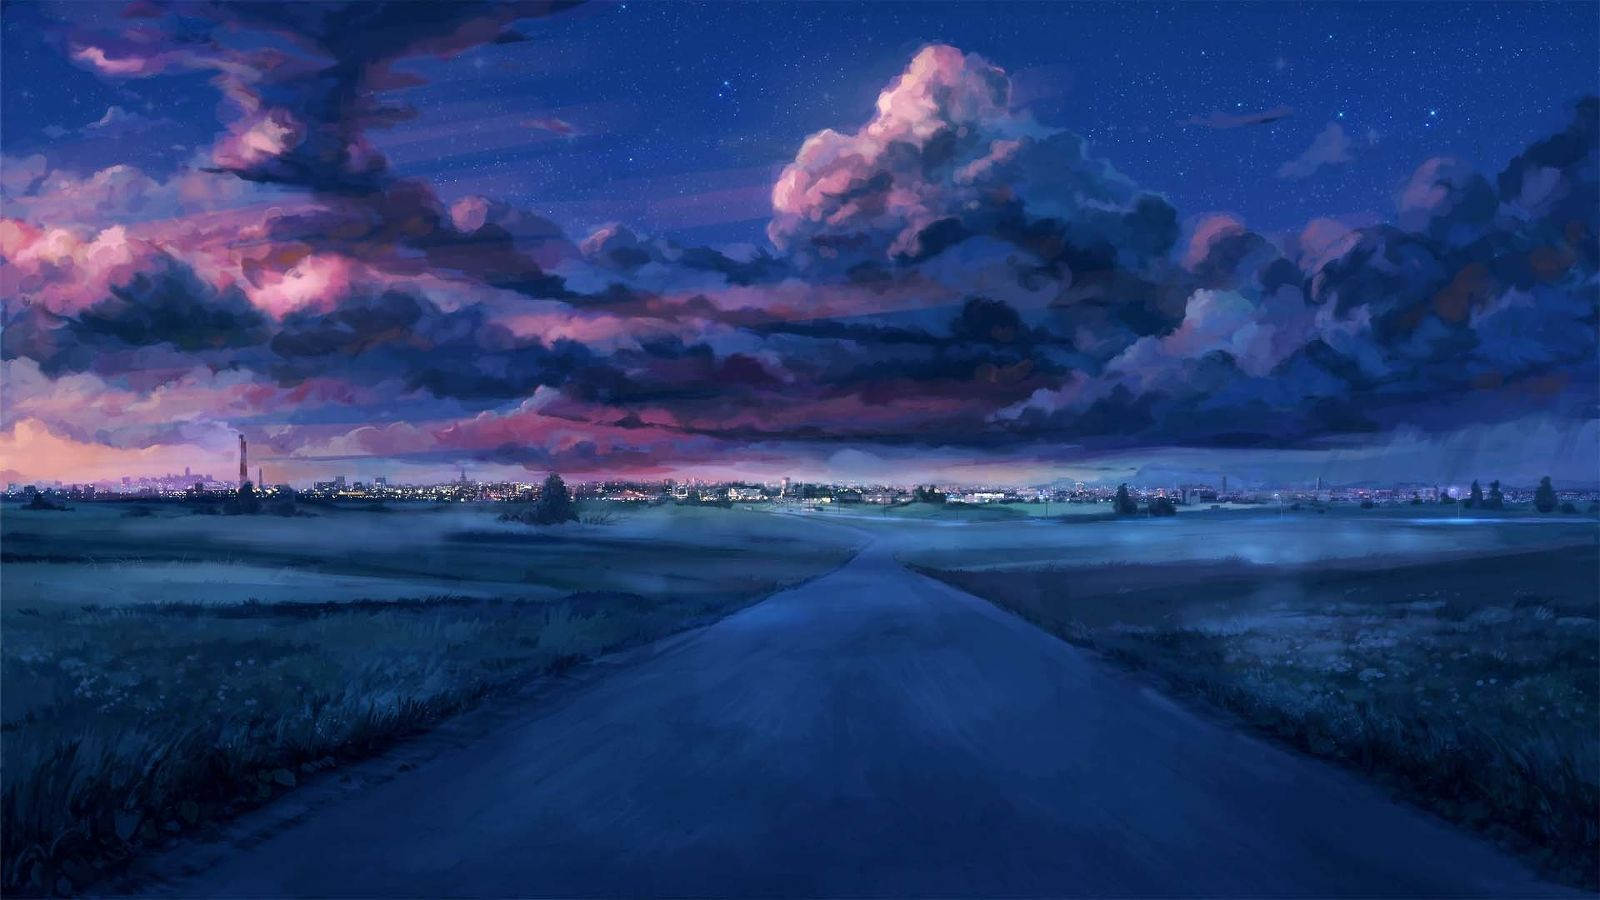 Anime Scenery Wallpaper Pictures 6386 1600x900 Umad Com Anime